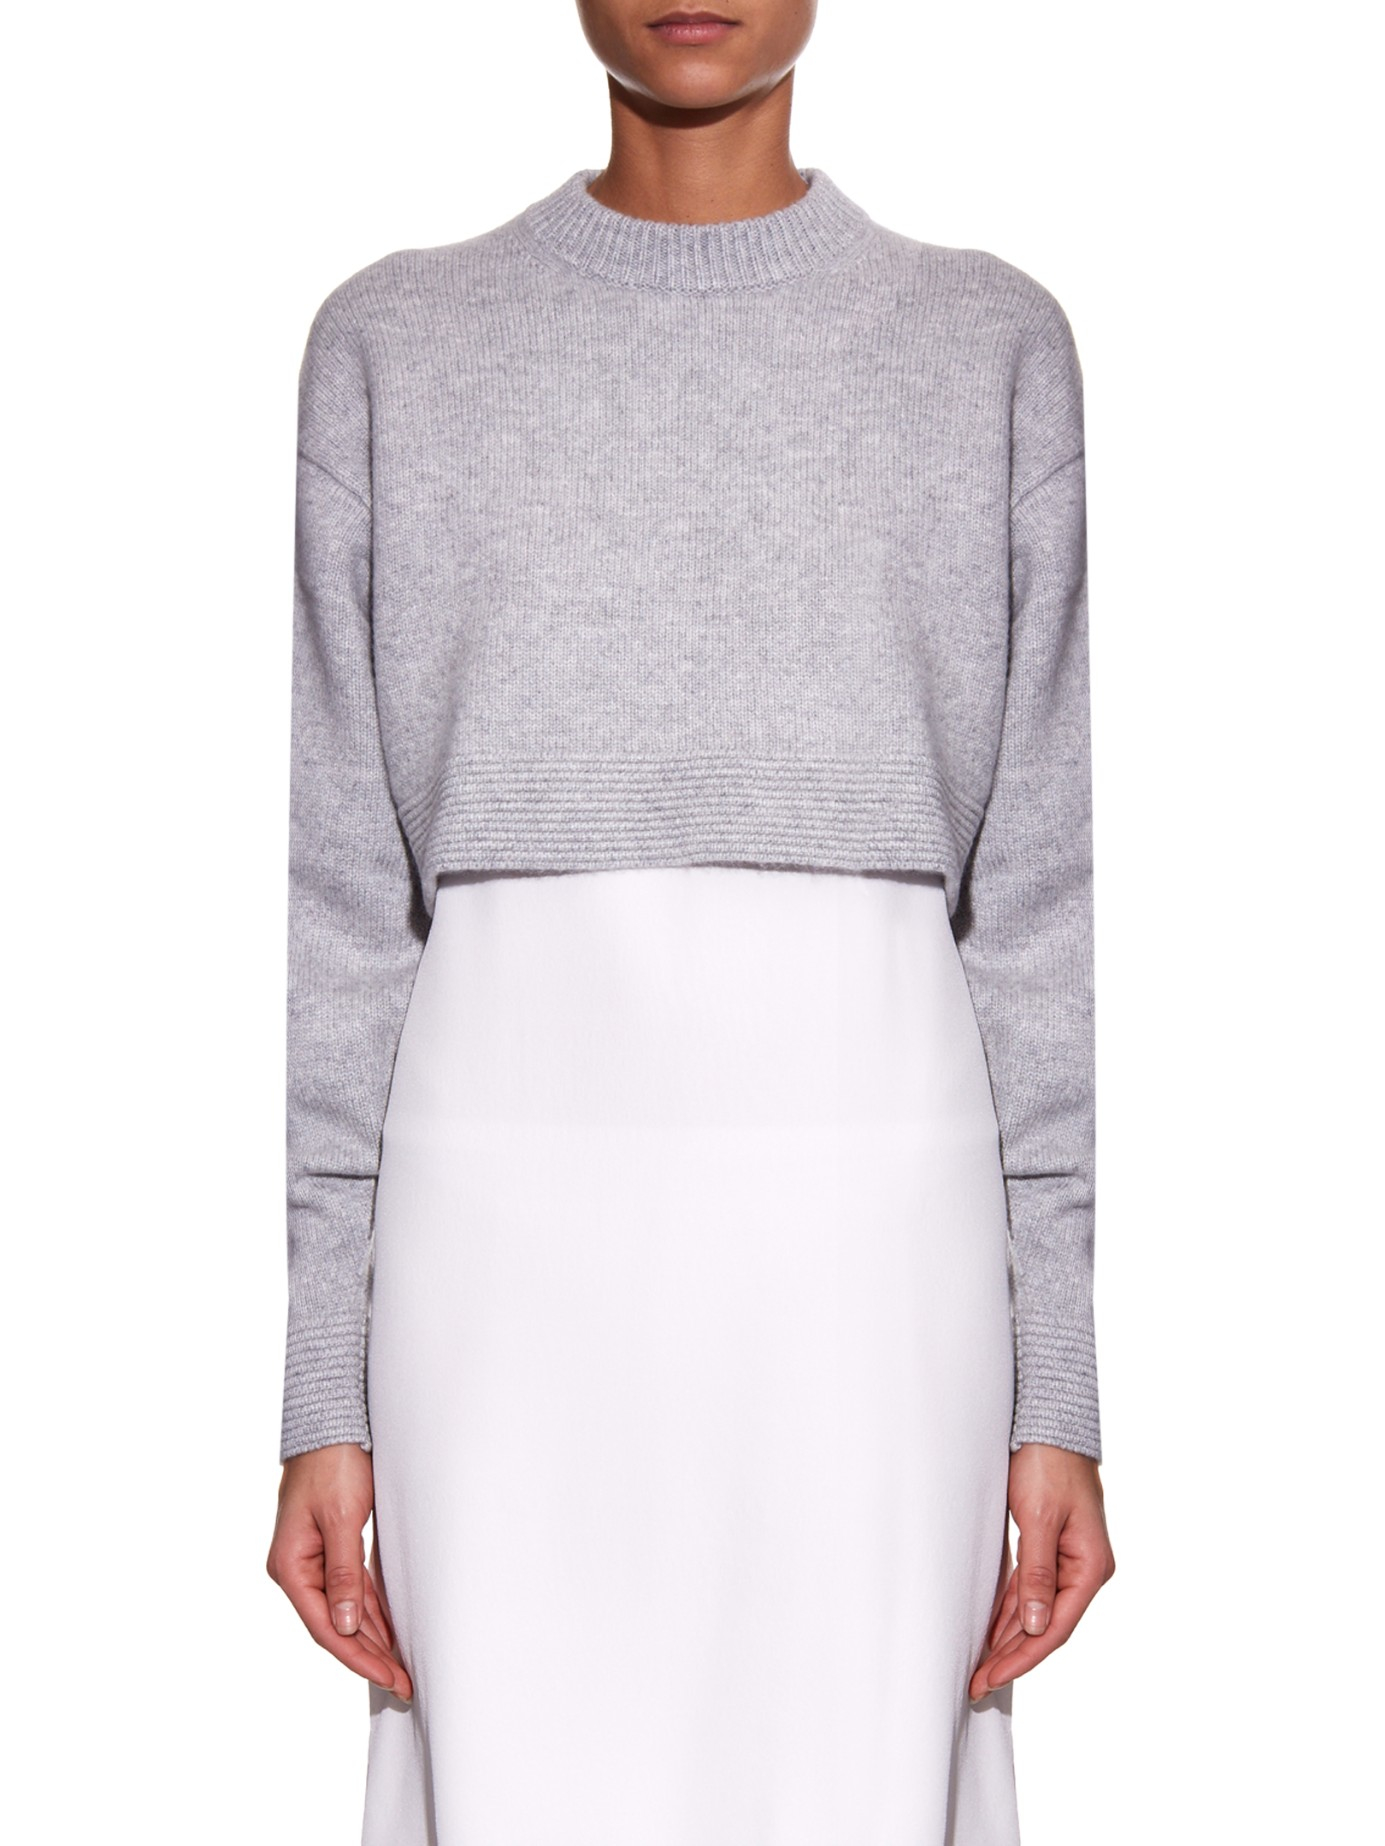 Tibi Cropped Cashmere Sweater in Gray | Lyst